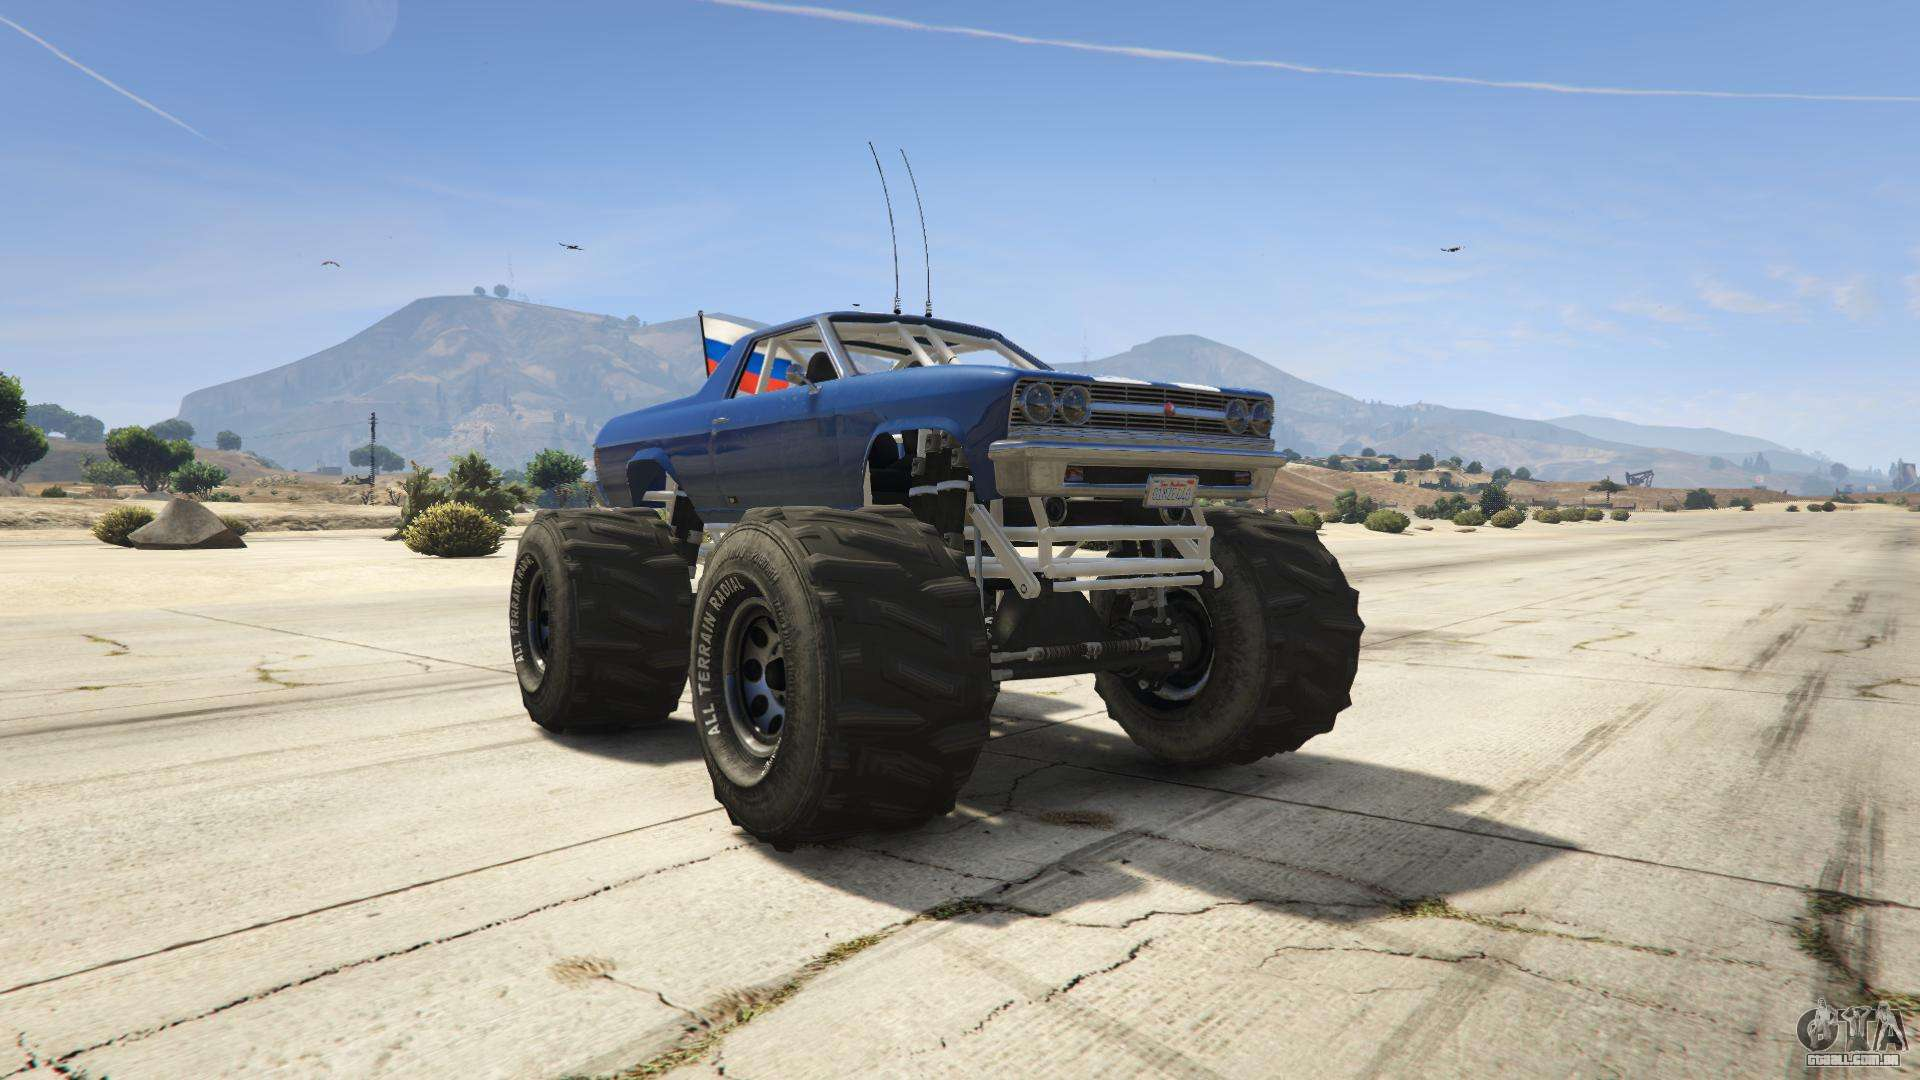 GTA 5 Cheval Marshall - vista frontal